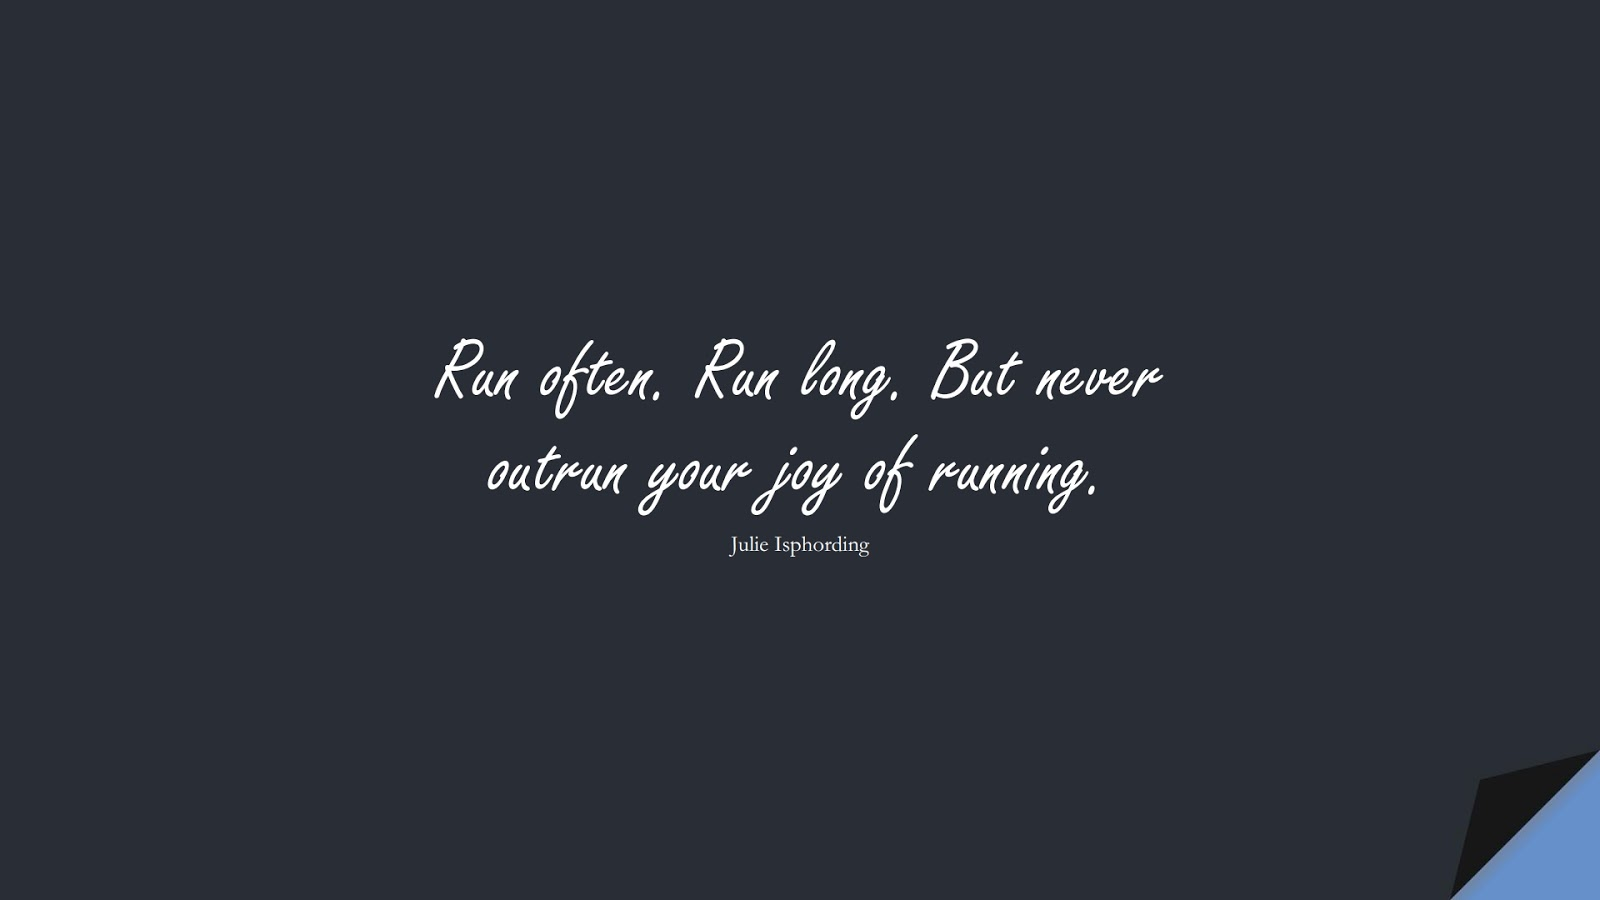 Run often. Run long. But never outrun your joy of running. (Julie Isphording);  #HealthQuotes